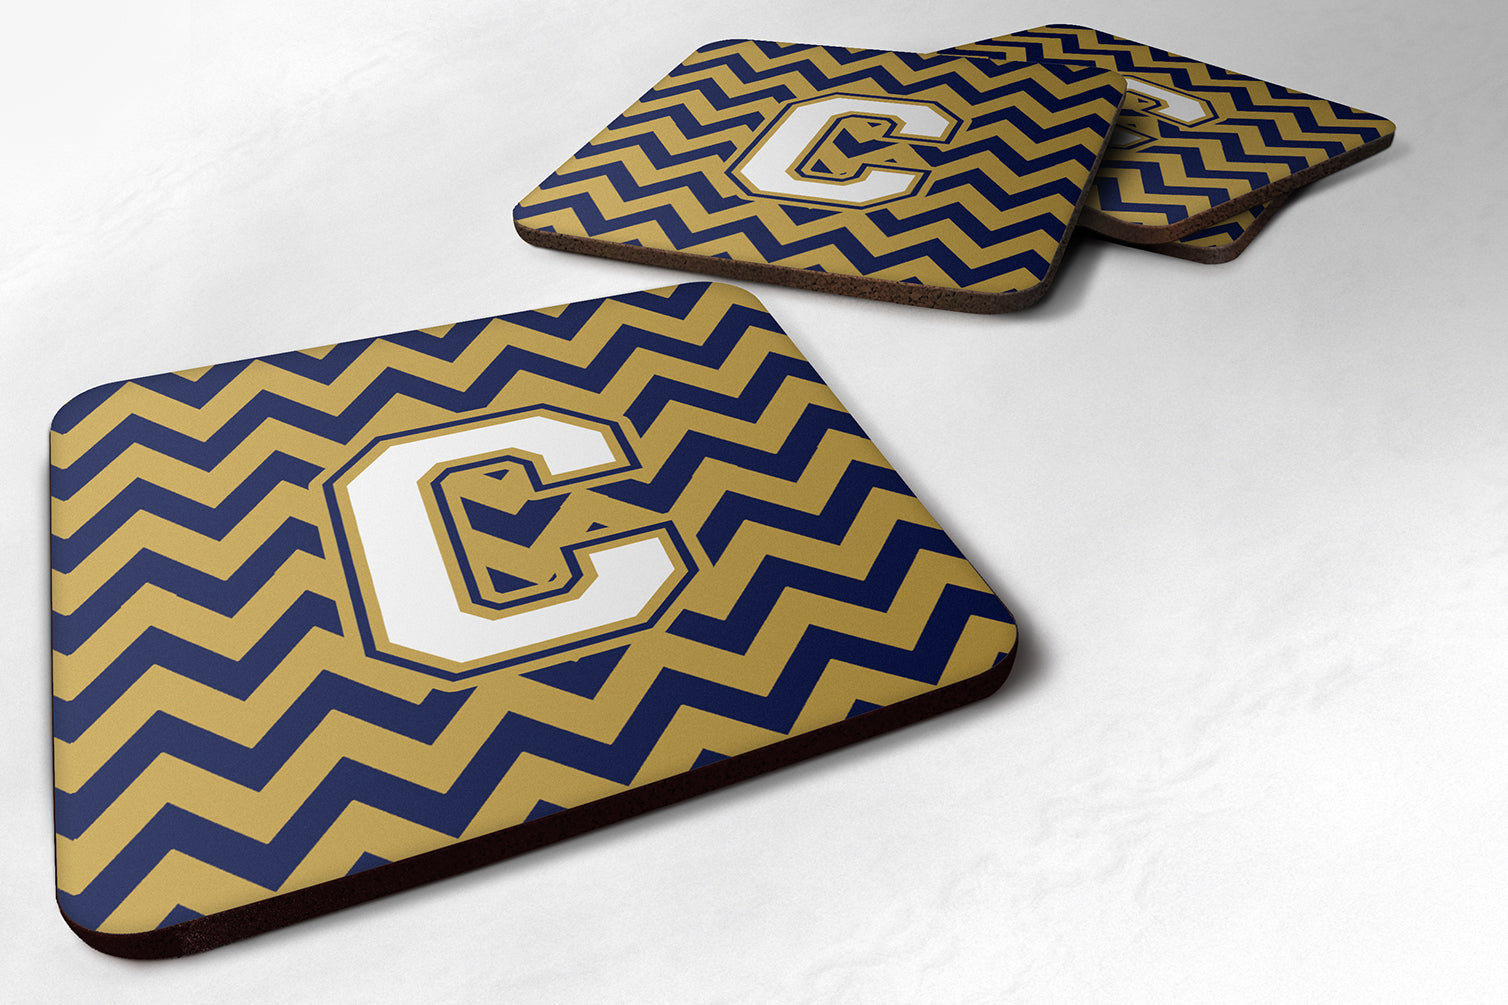 Letter C Chevron Navy Blue and Gold Foam Coaster Set of 4 CJ1057-CFC by Caroline's Treasures